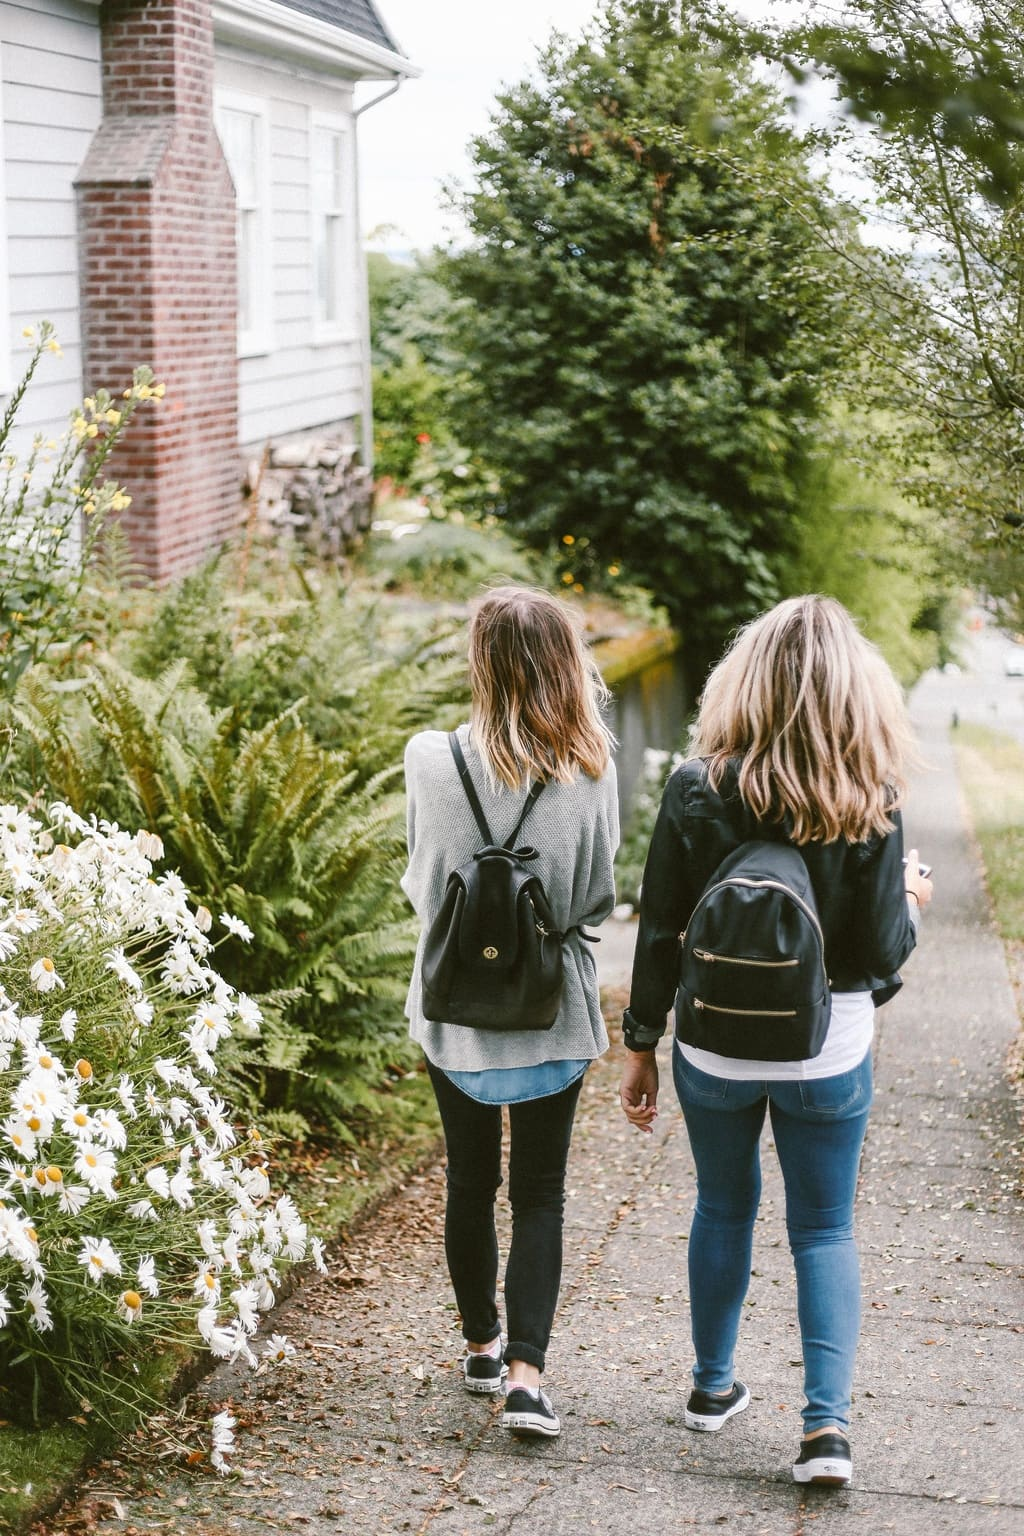 Two female friends going for a walk together